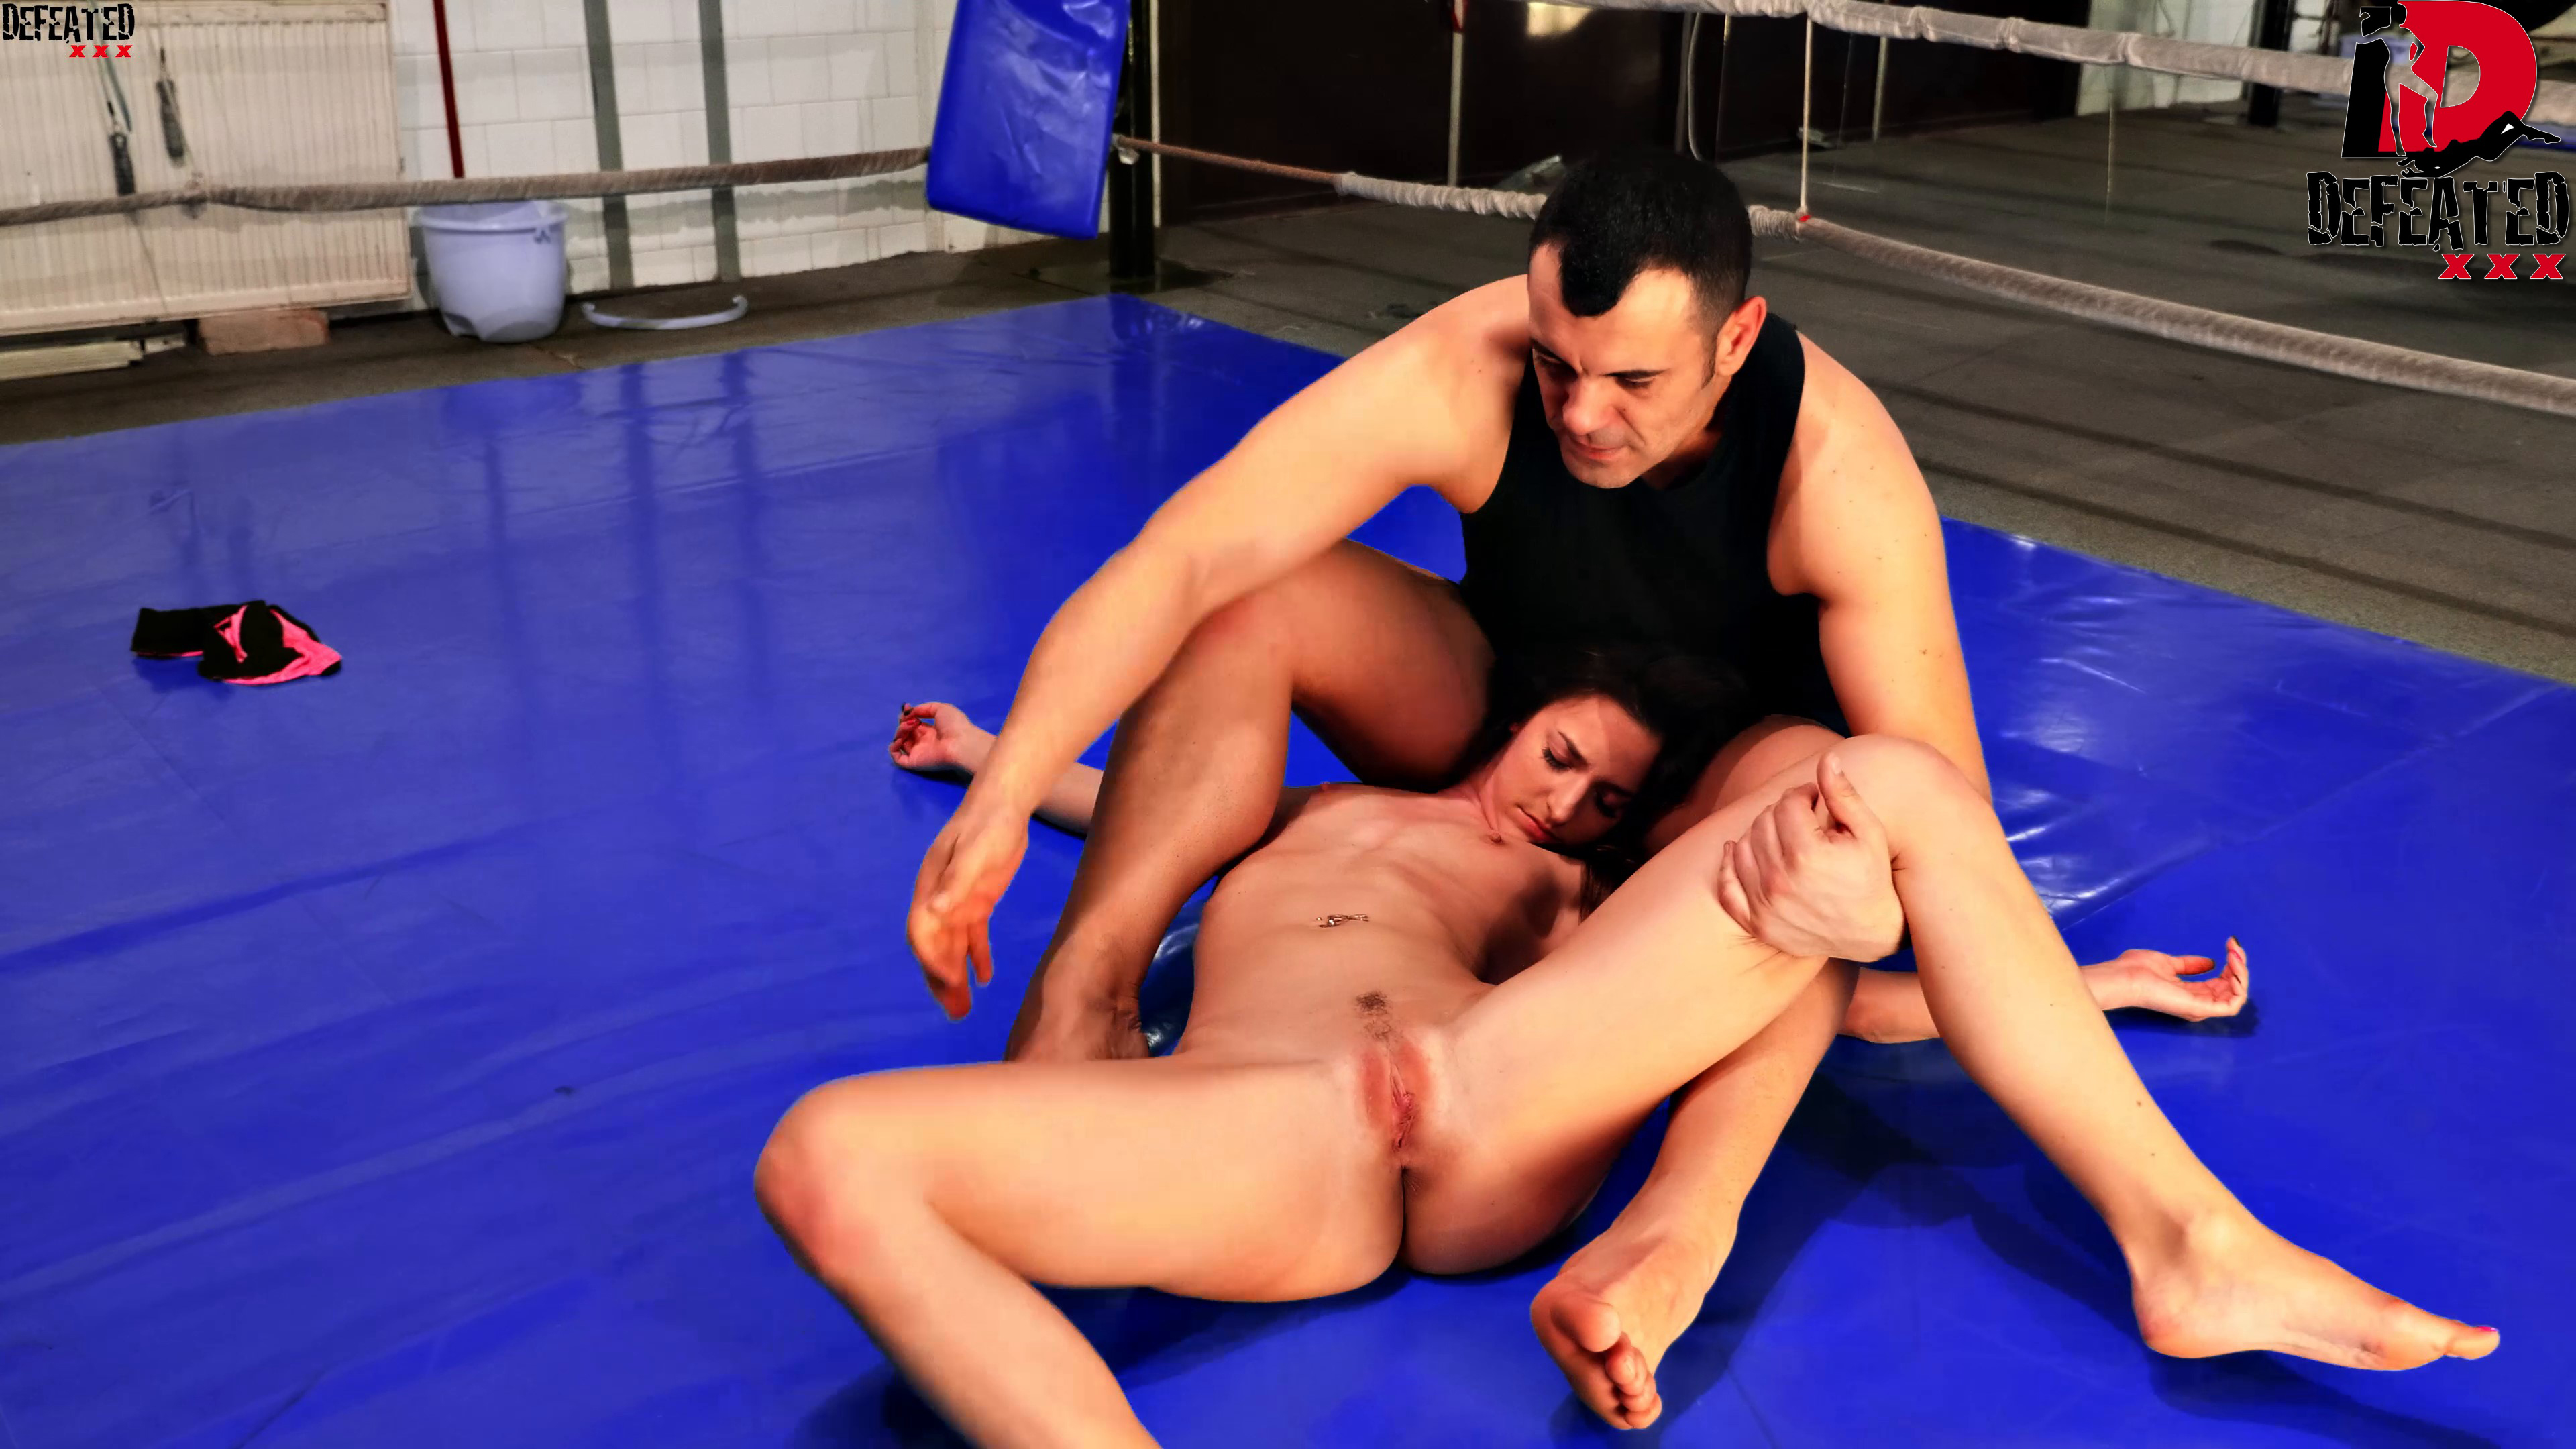 DEFEATED-MXD66---Amirah-Antonio-(96)